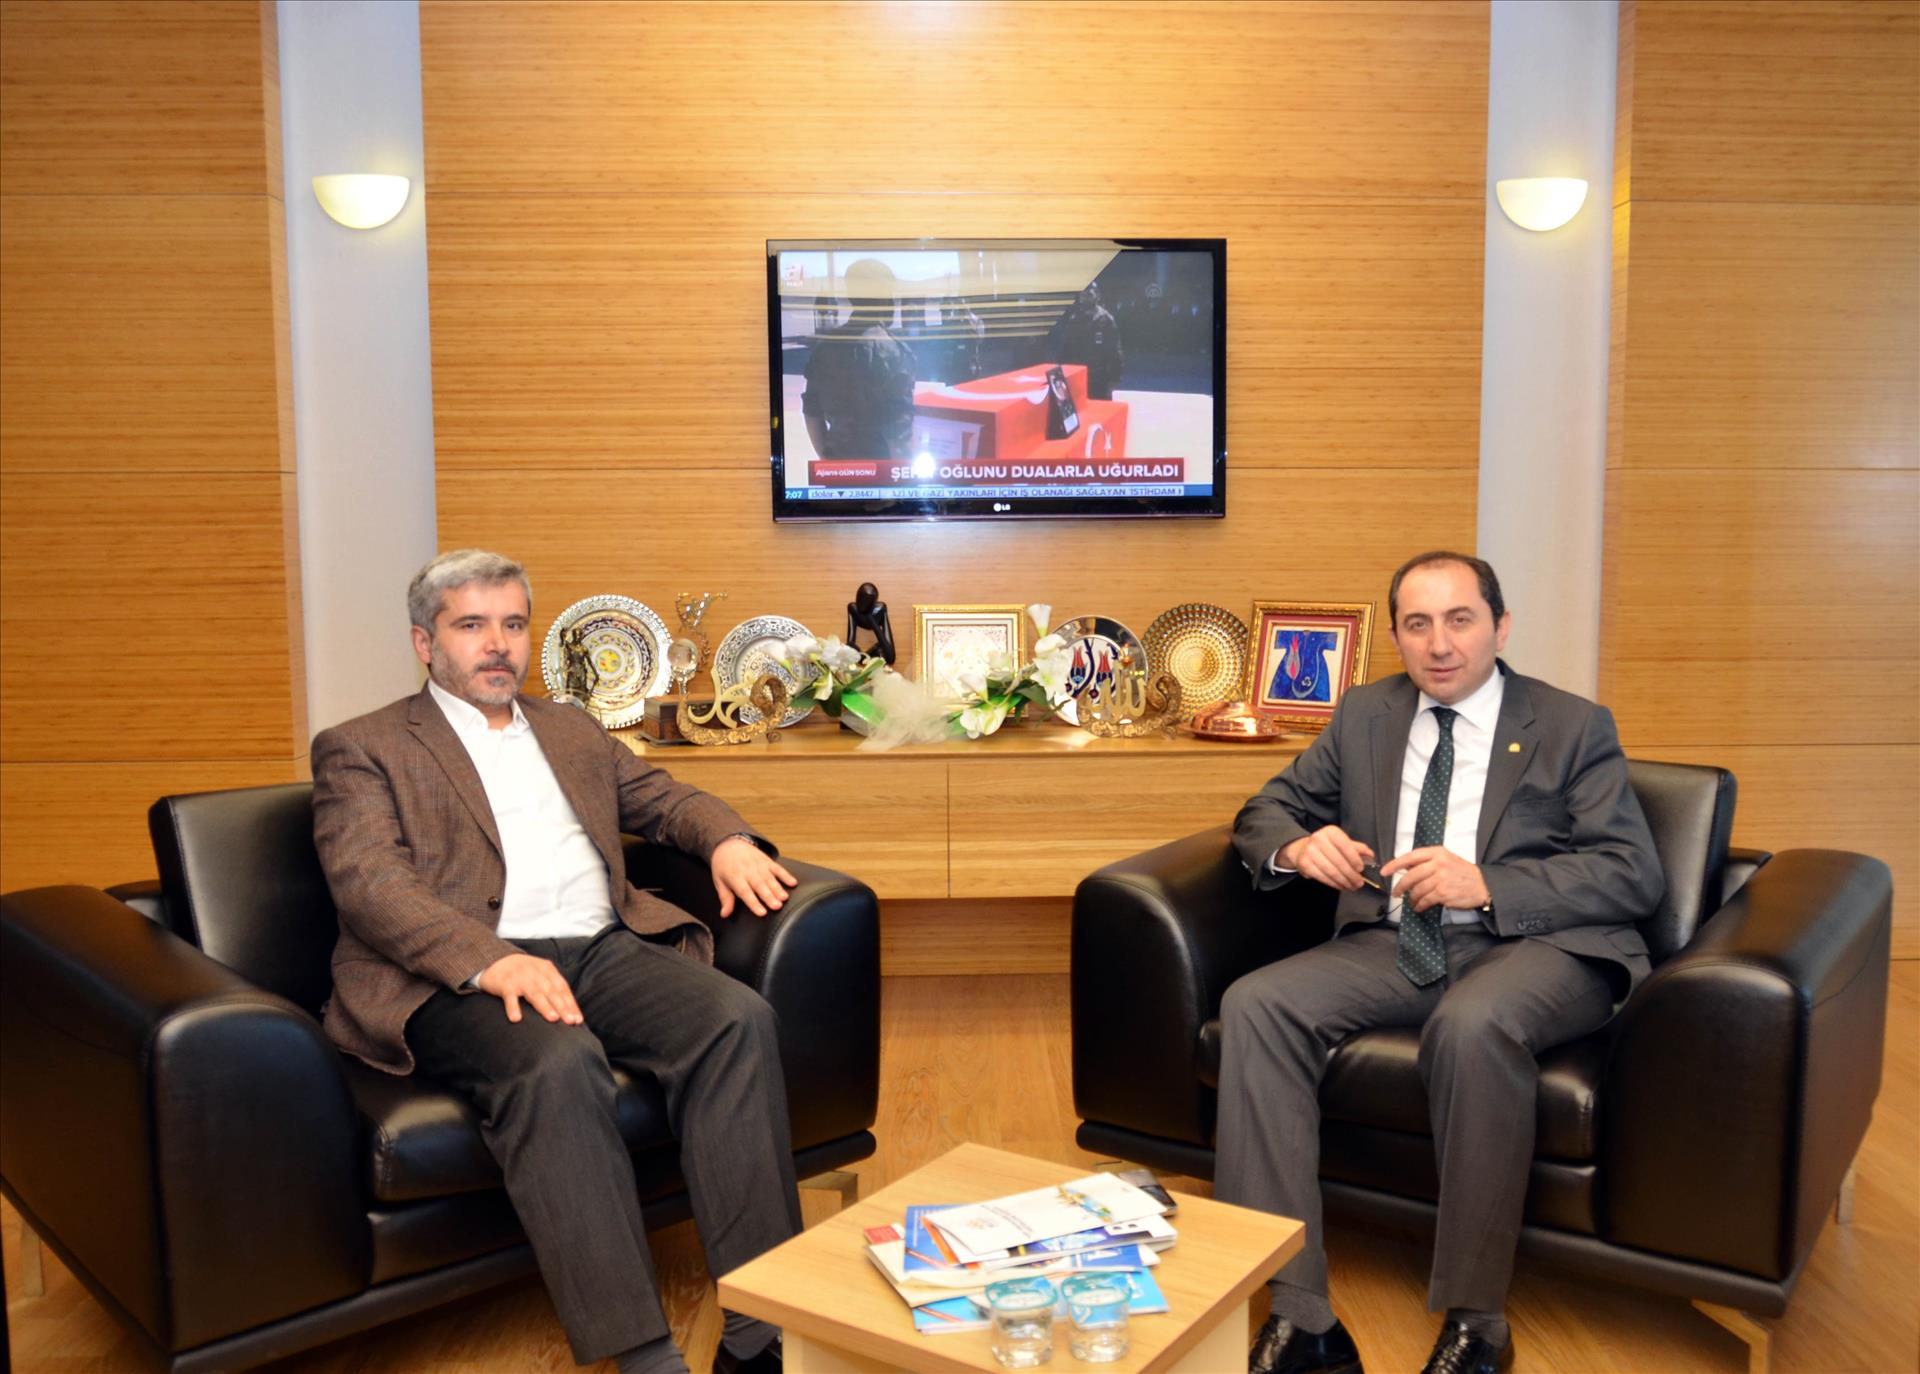 The Rector of Aksaray University Prof. Dr. Şahin Makes a Visit to Our Rector